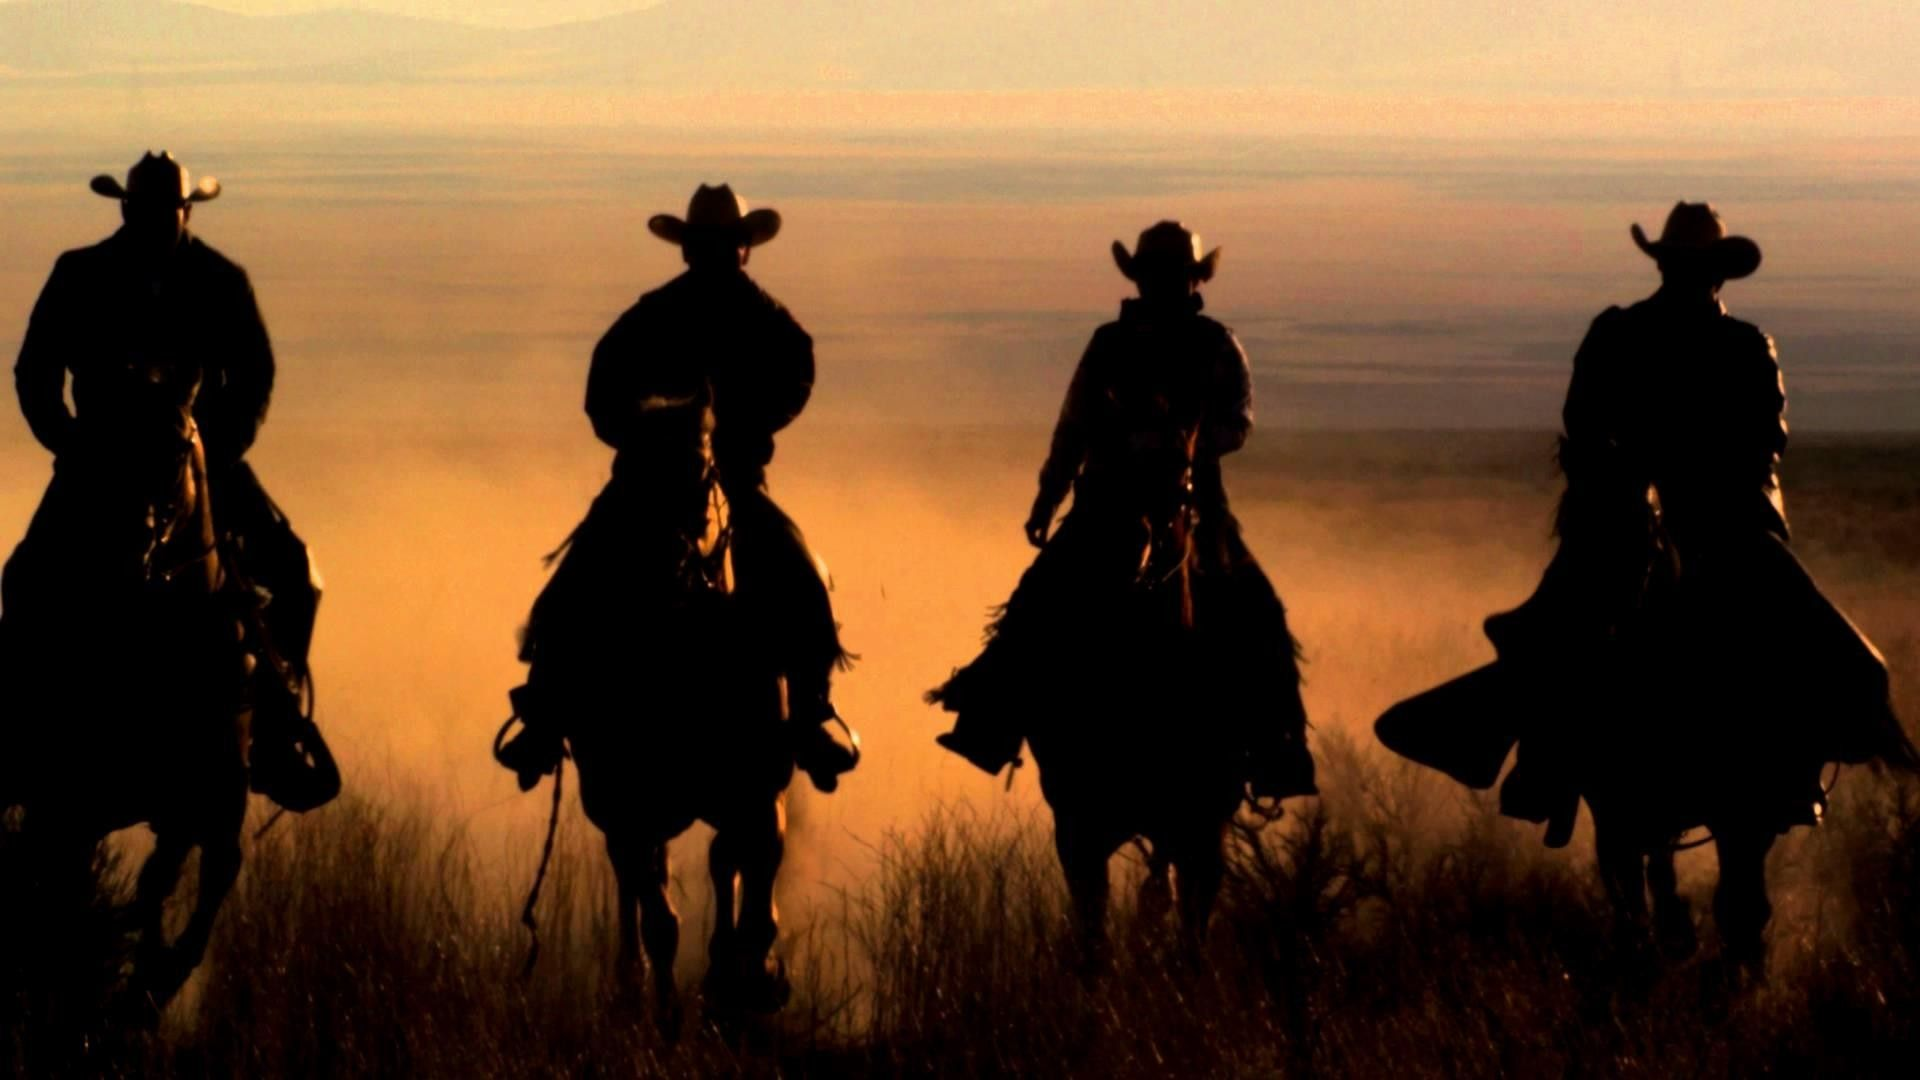 Cowboy And Western Desktop Wallpaper 67 Images Horse Photos Horse Riding Horses